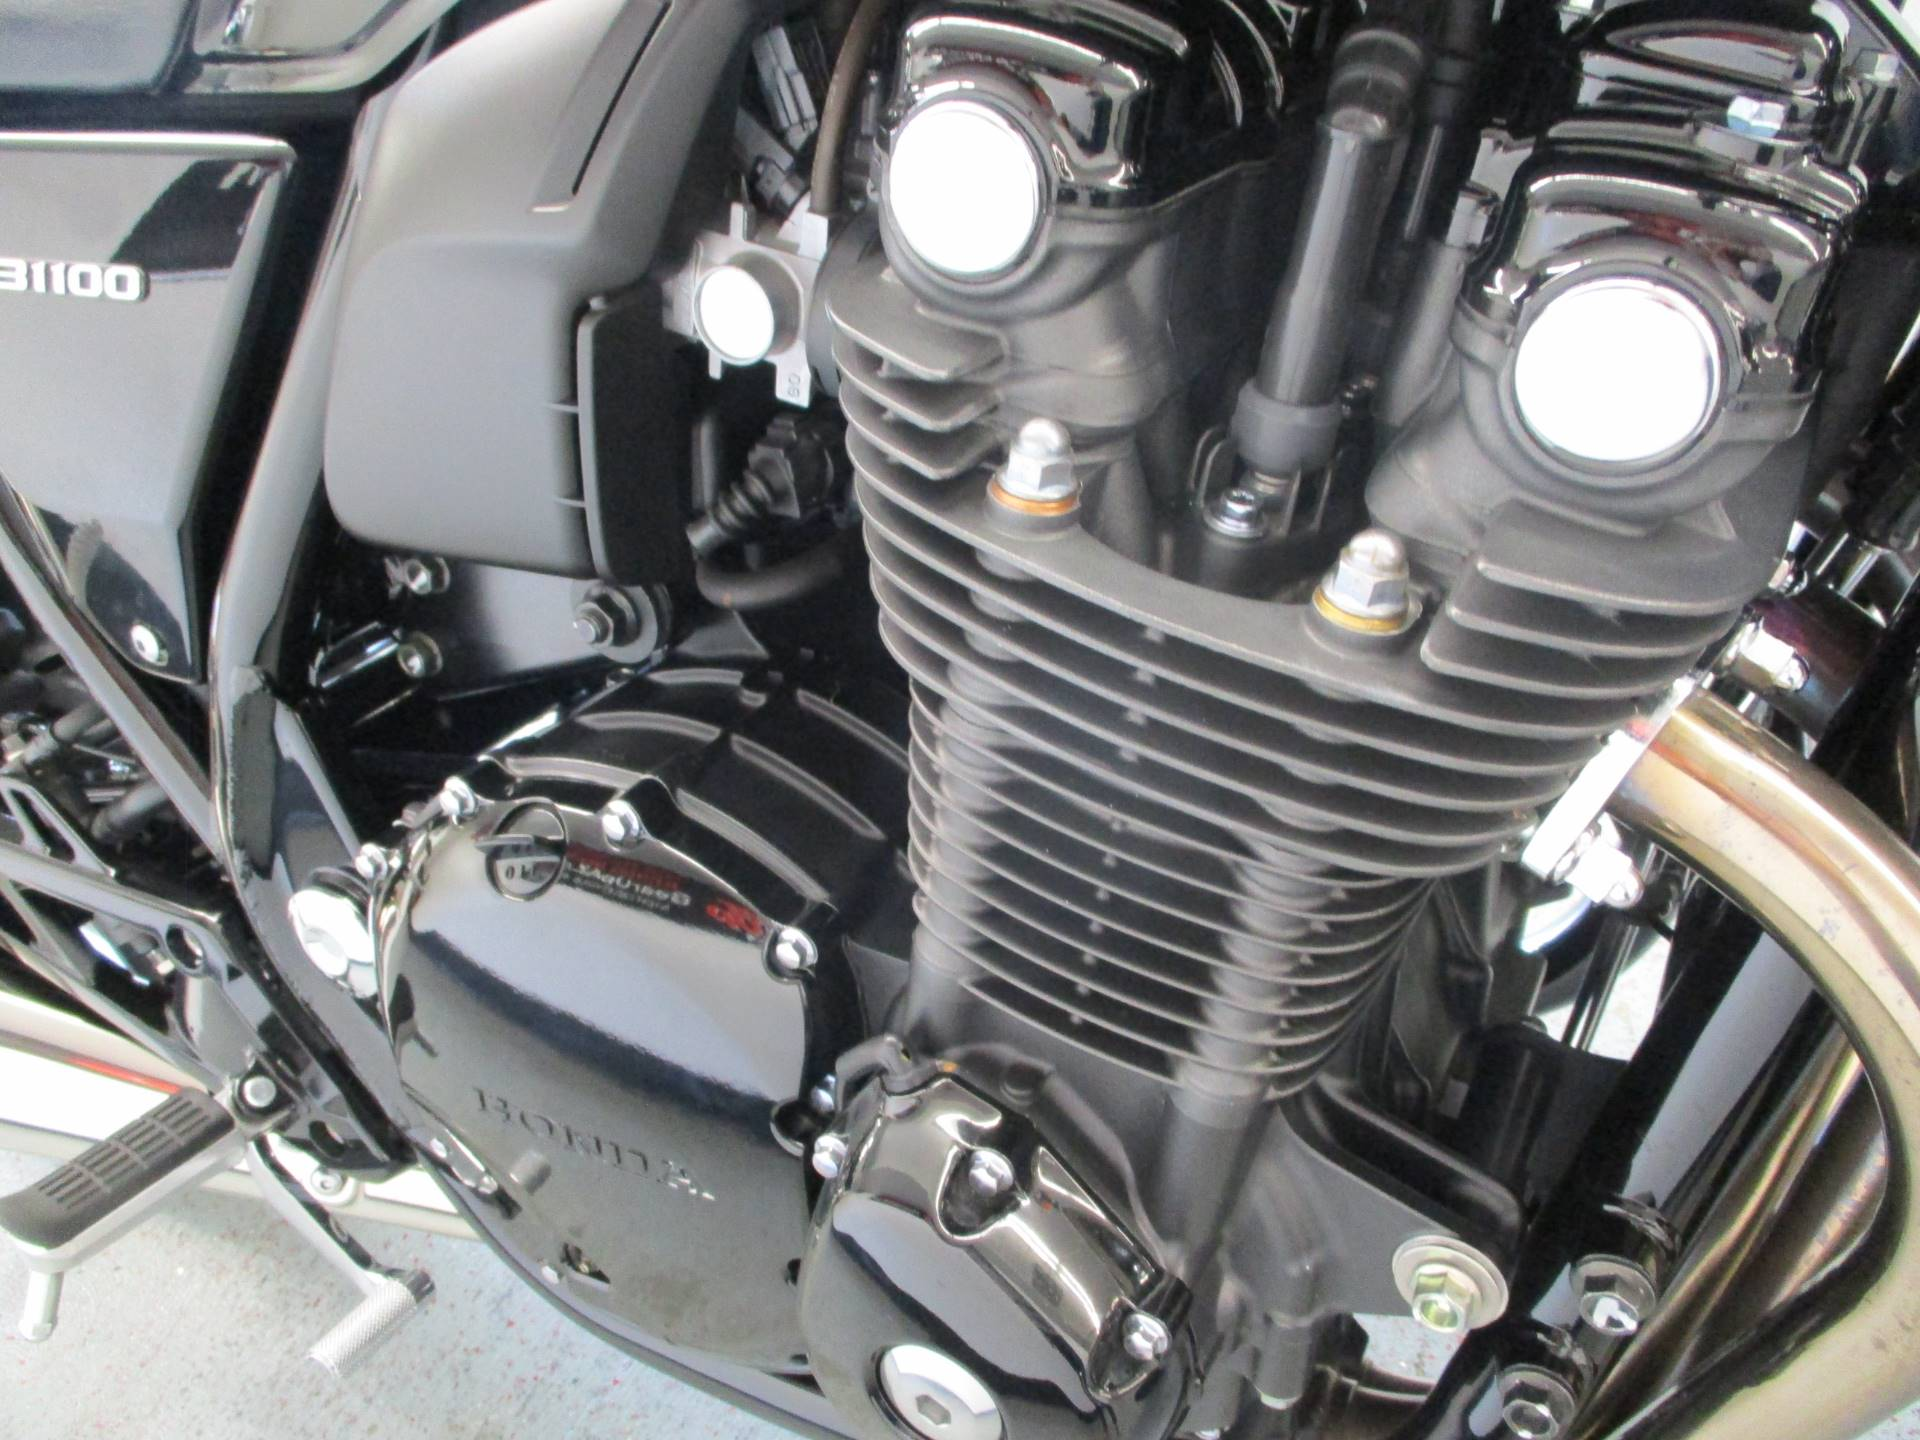 2014 Honda CB1100 in Lake Havasu City, Arizona - Photo 20